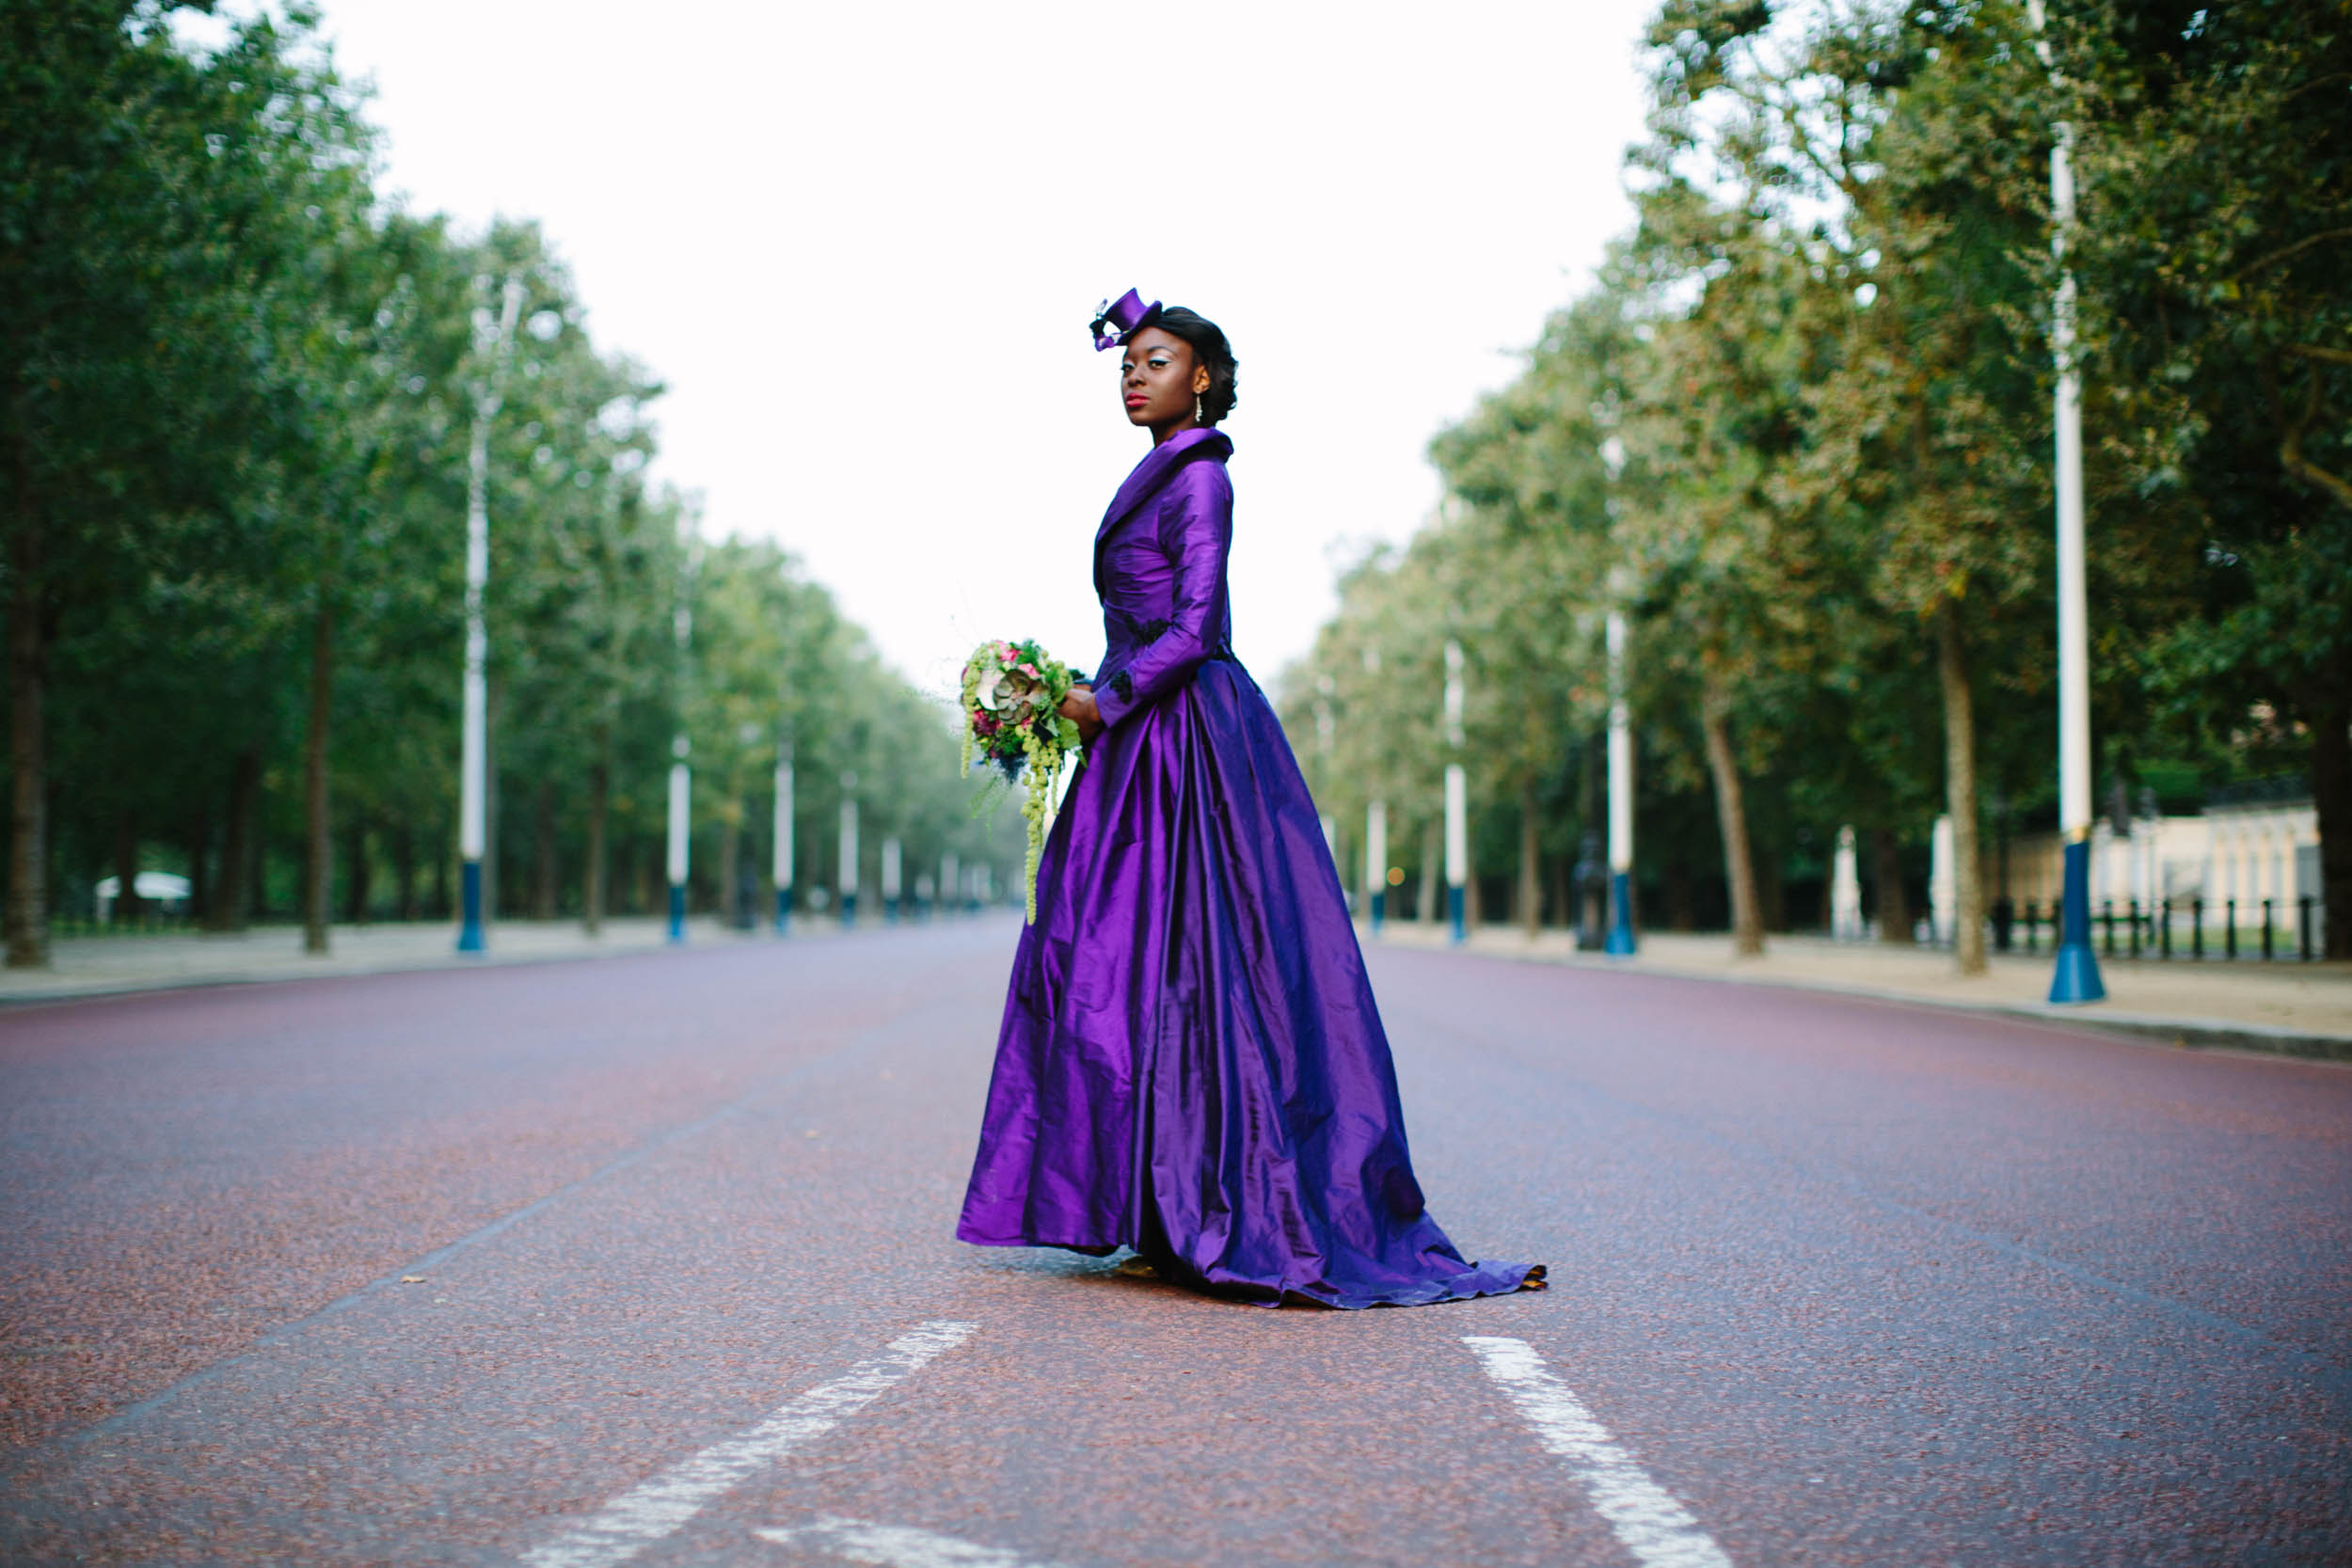 purple wedding dress - burlesque wedding - alternative bridal wear - unique wedding dress - unique wedding coat - coloured wedding dress